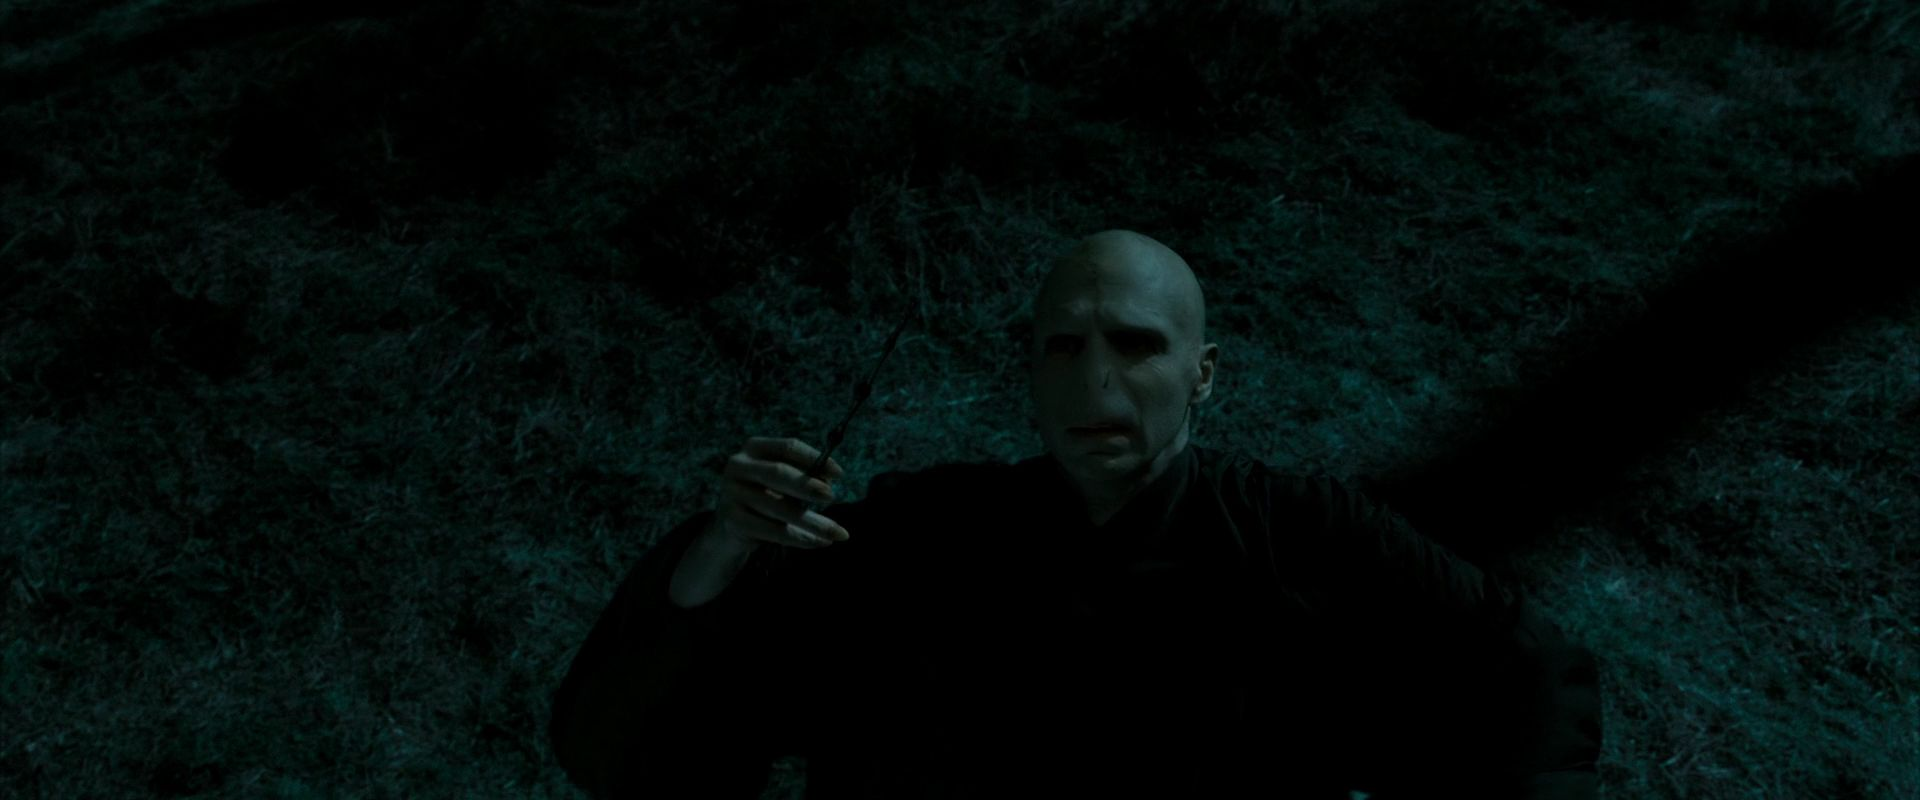 lord voldemort images hp dh part 2 hd wallpaper and background